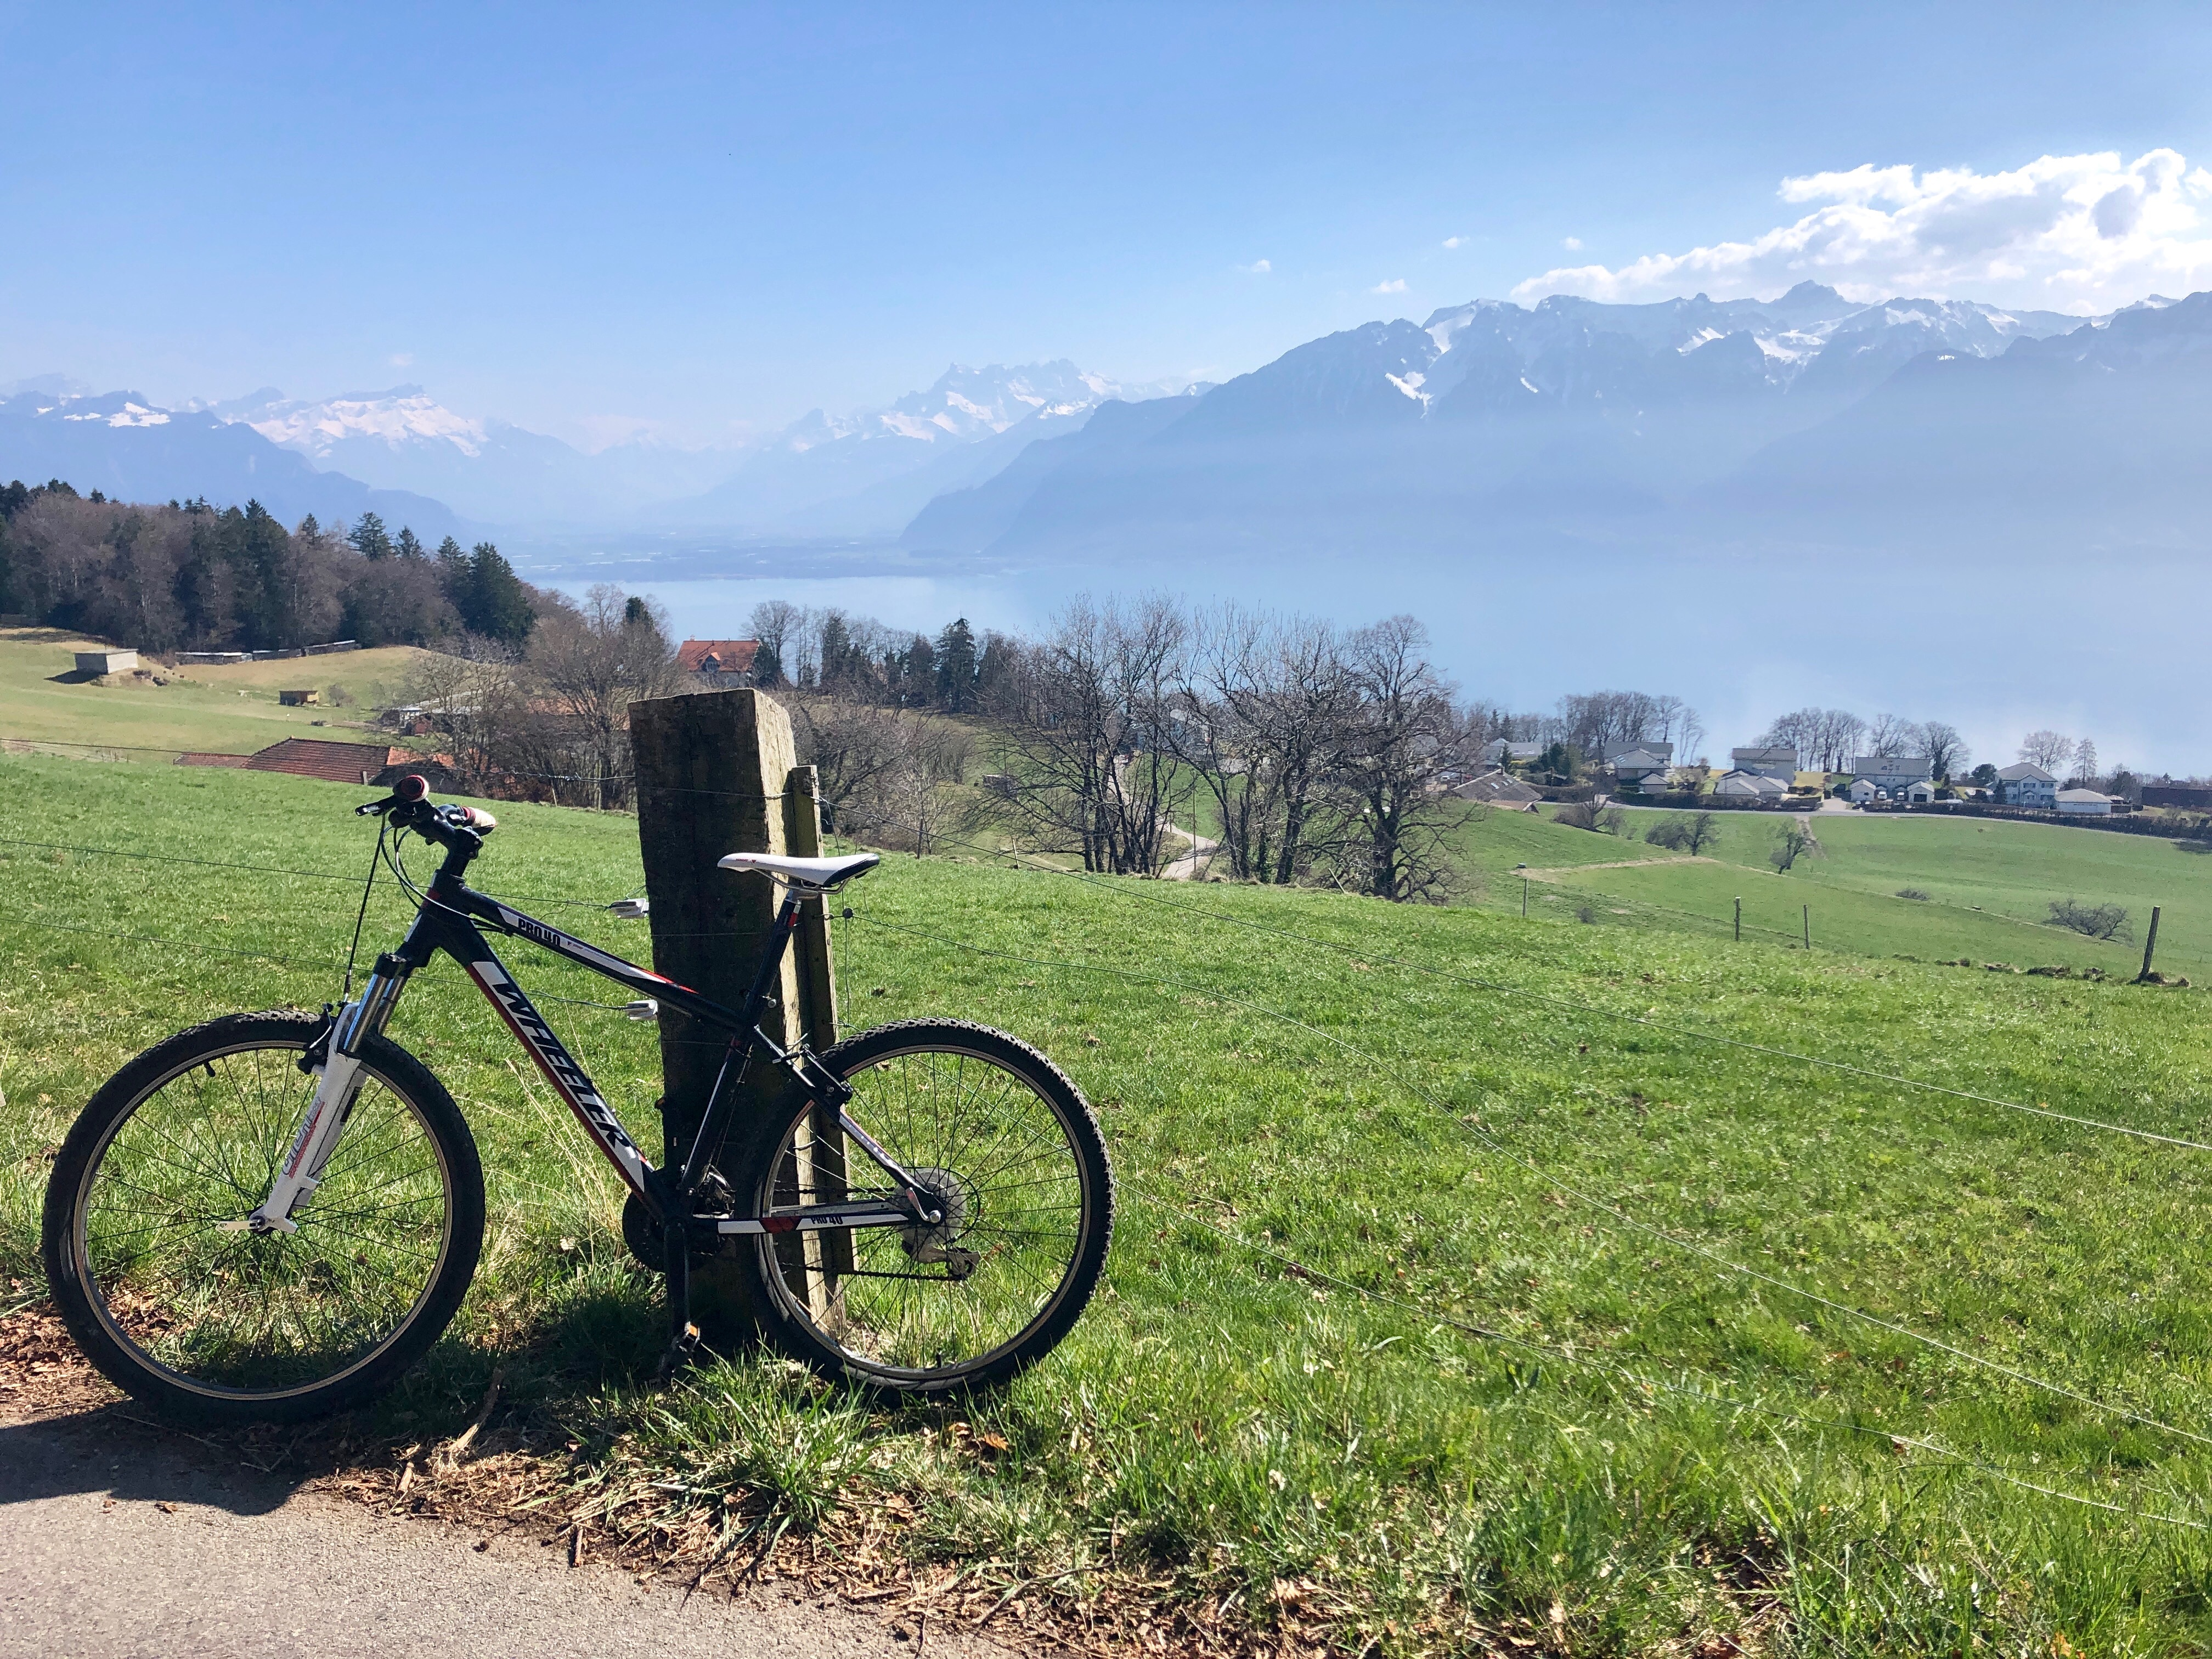 Mountain bike above Vevey, overlooking Swiss & French Alps